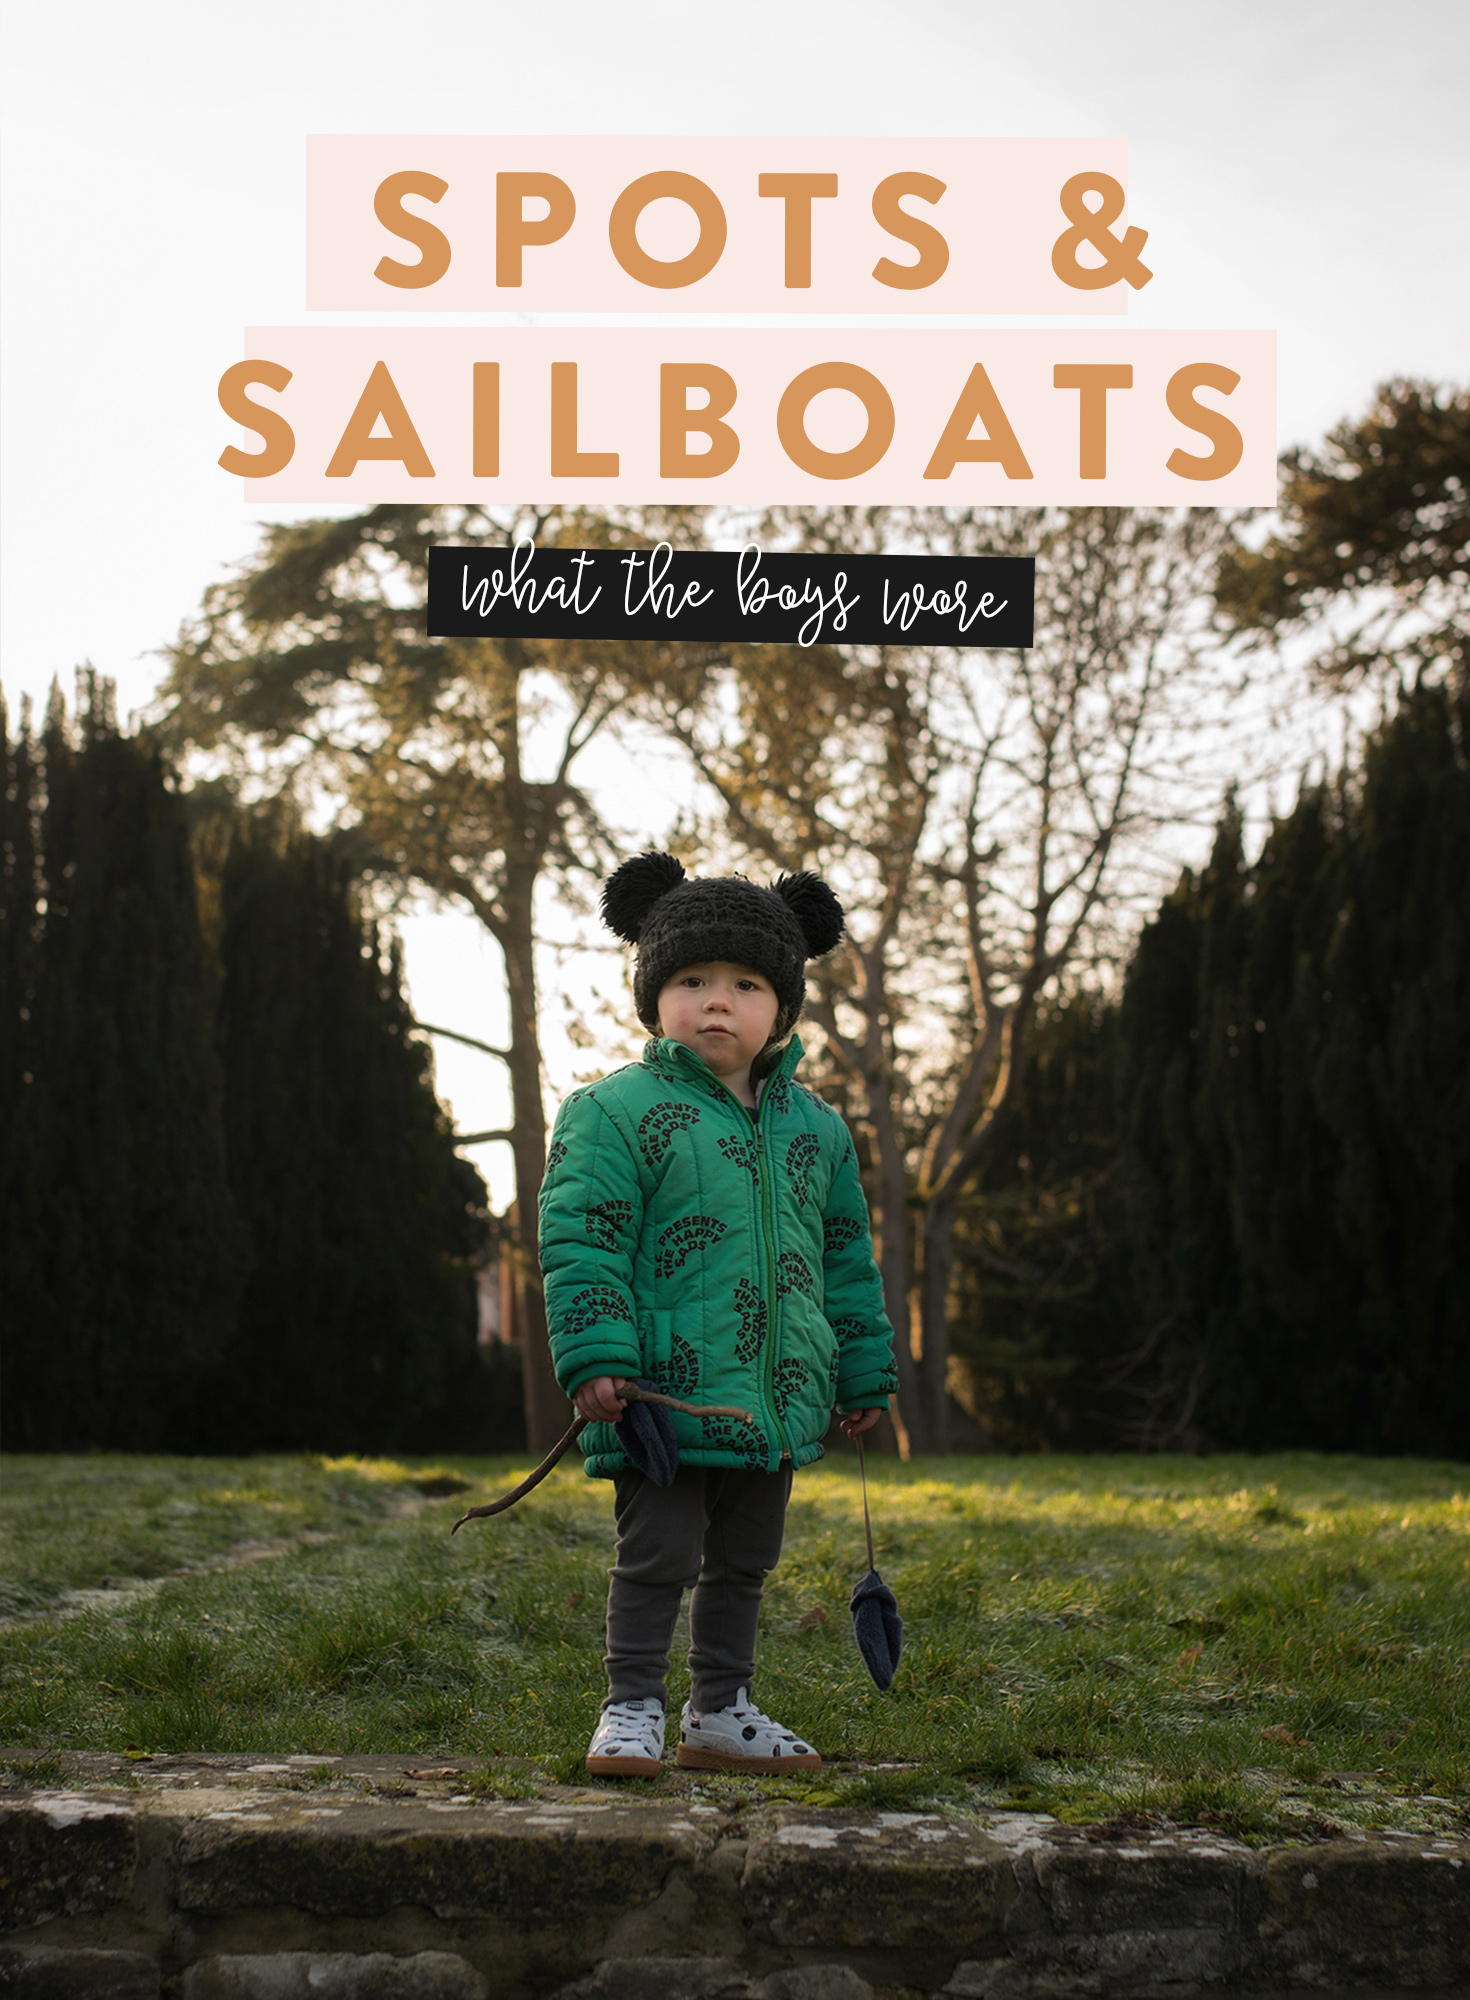 Winter is usually my least favourite season for taking photos, but we've been making up for the dull days with spotty shoes and sailboat knits.